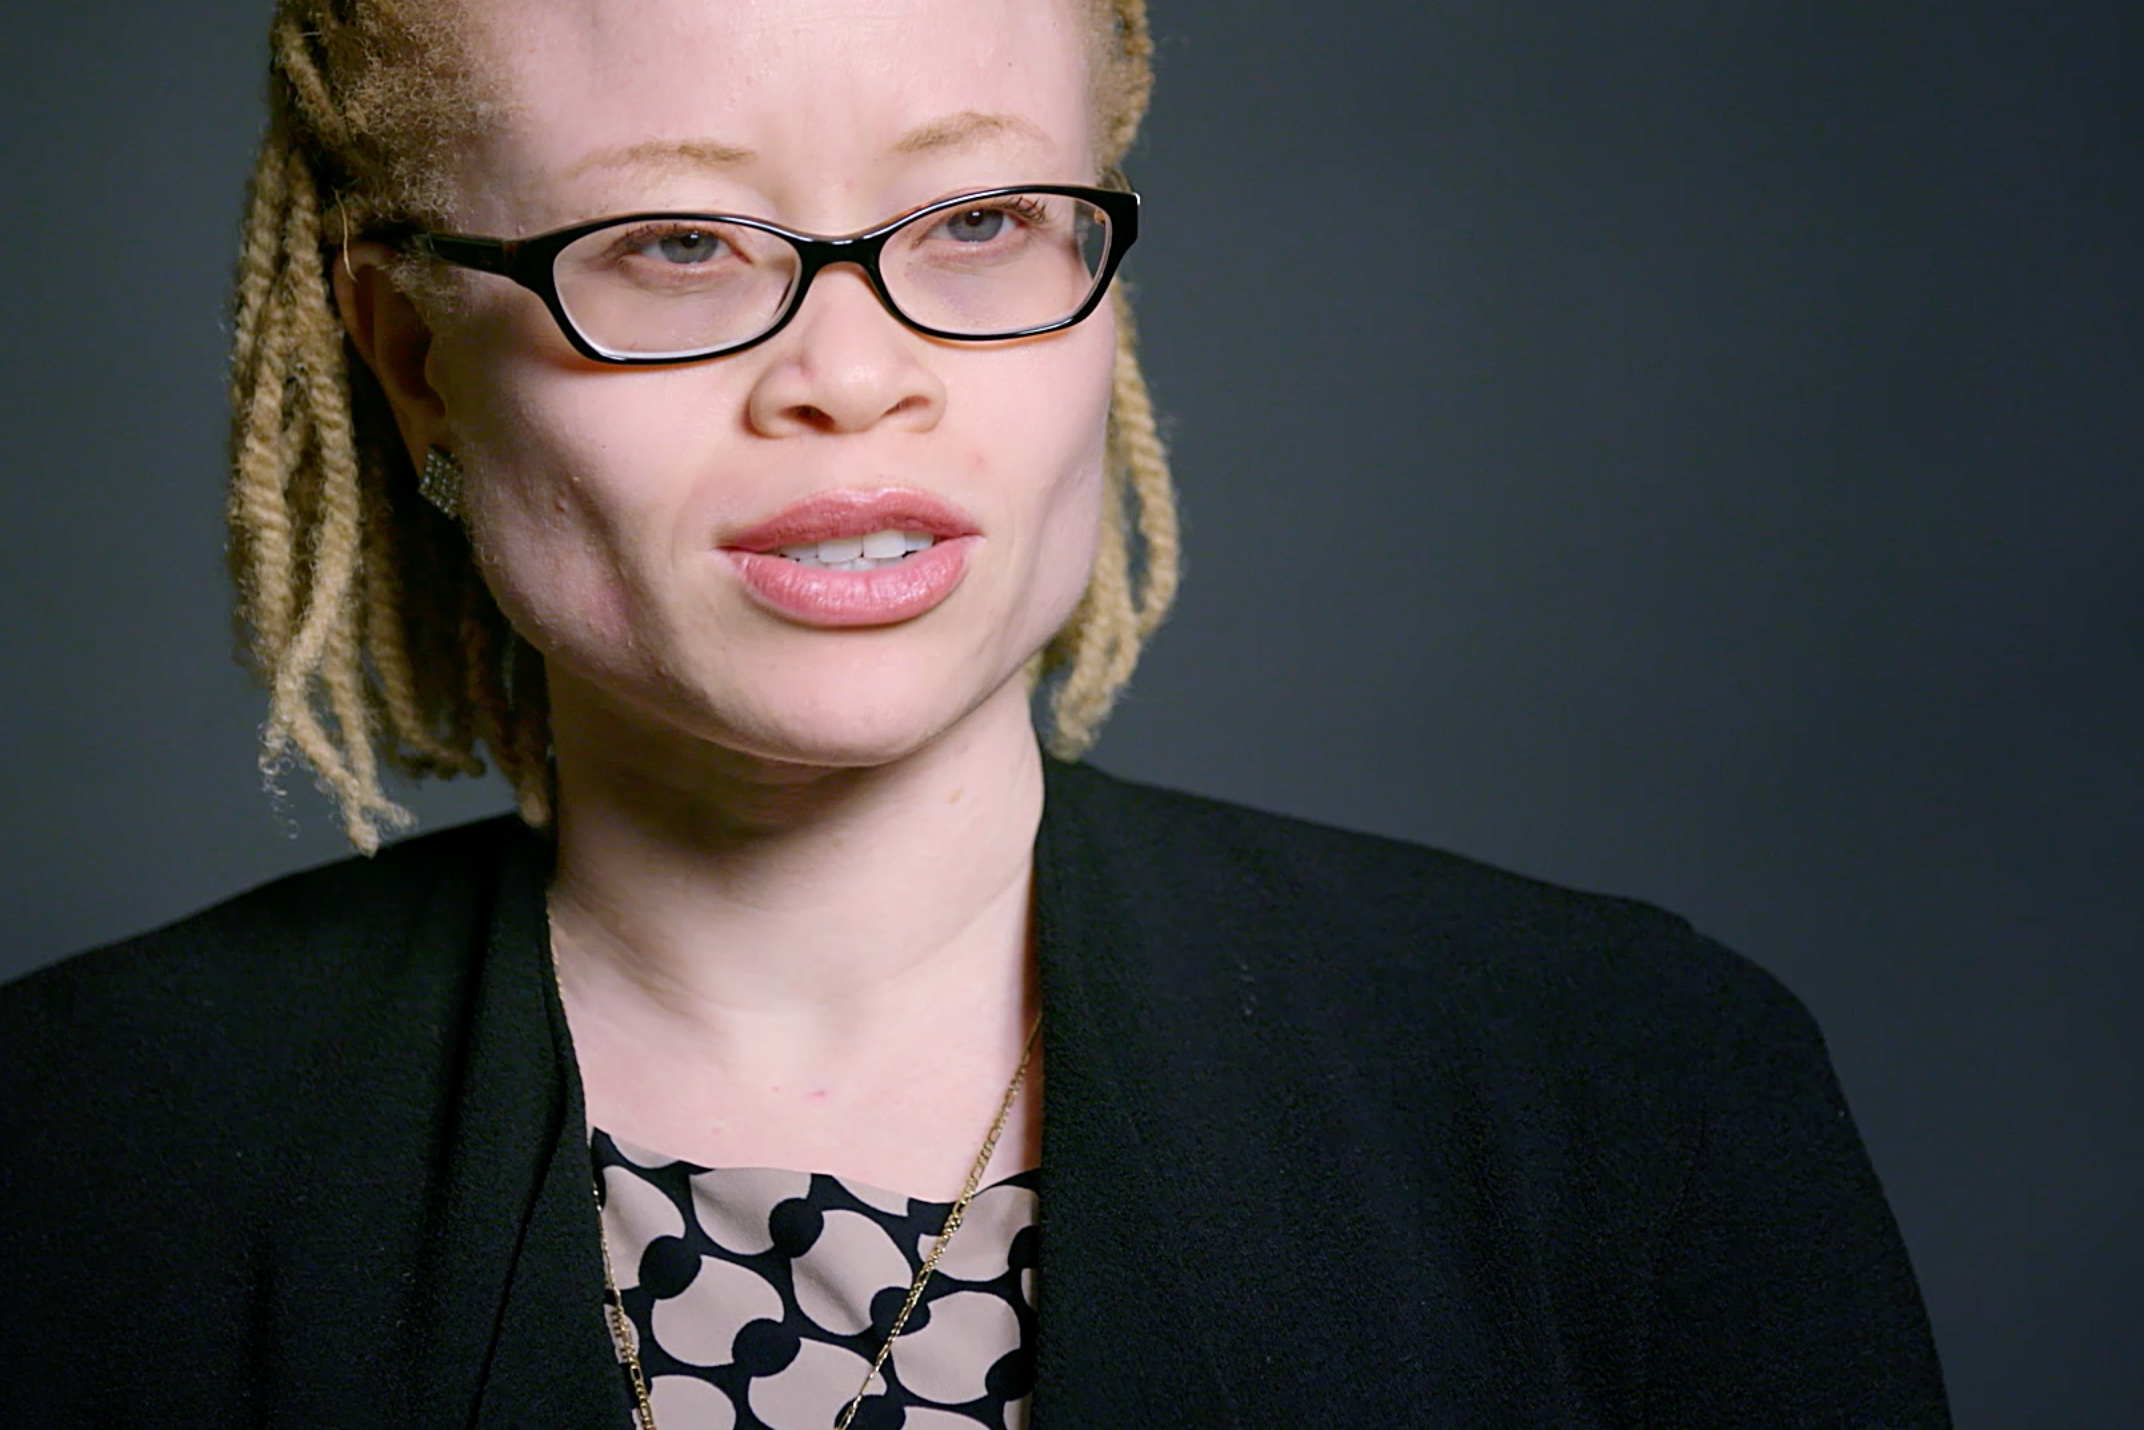 States In America Defending The Human Rights Of People With Albinism